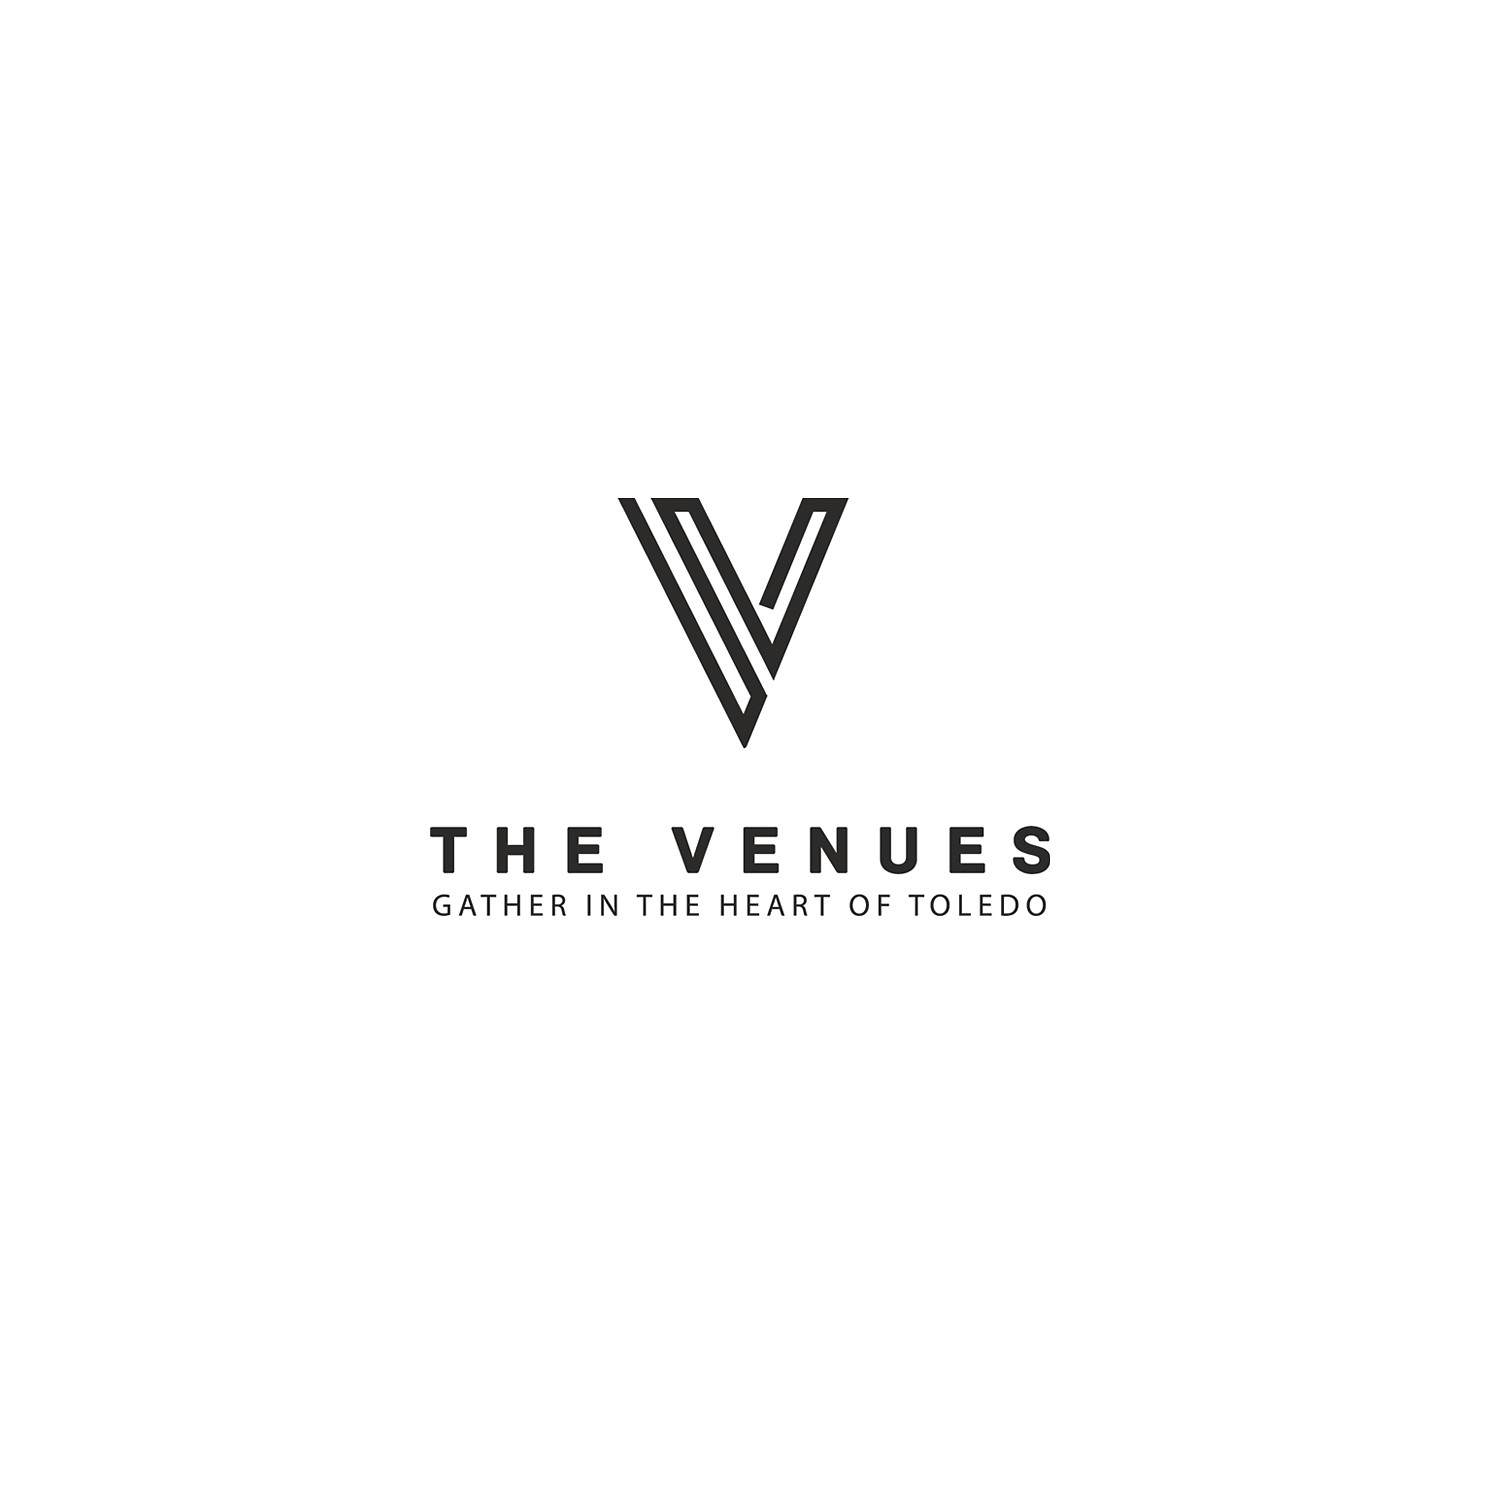 """Creat a new brand with vintage feel for """"The Venues"""" event space."""